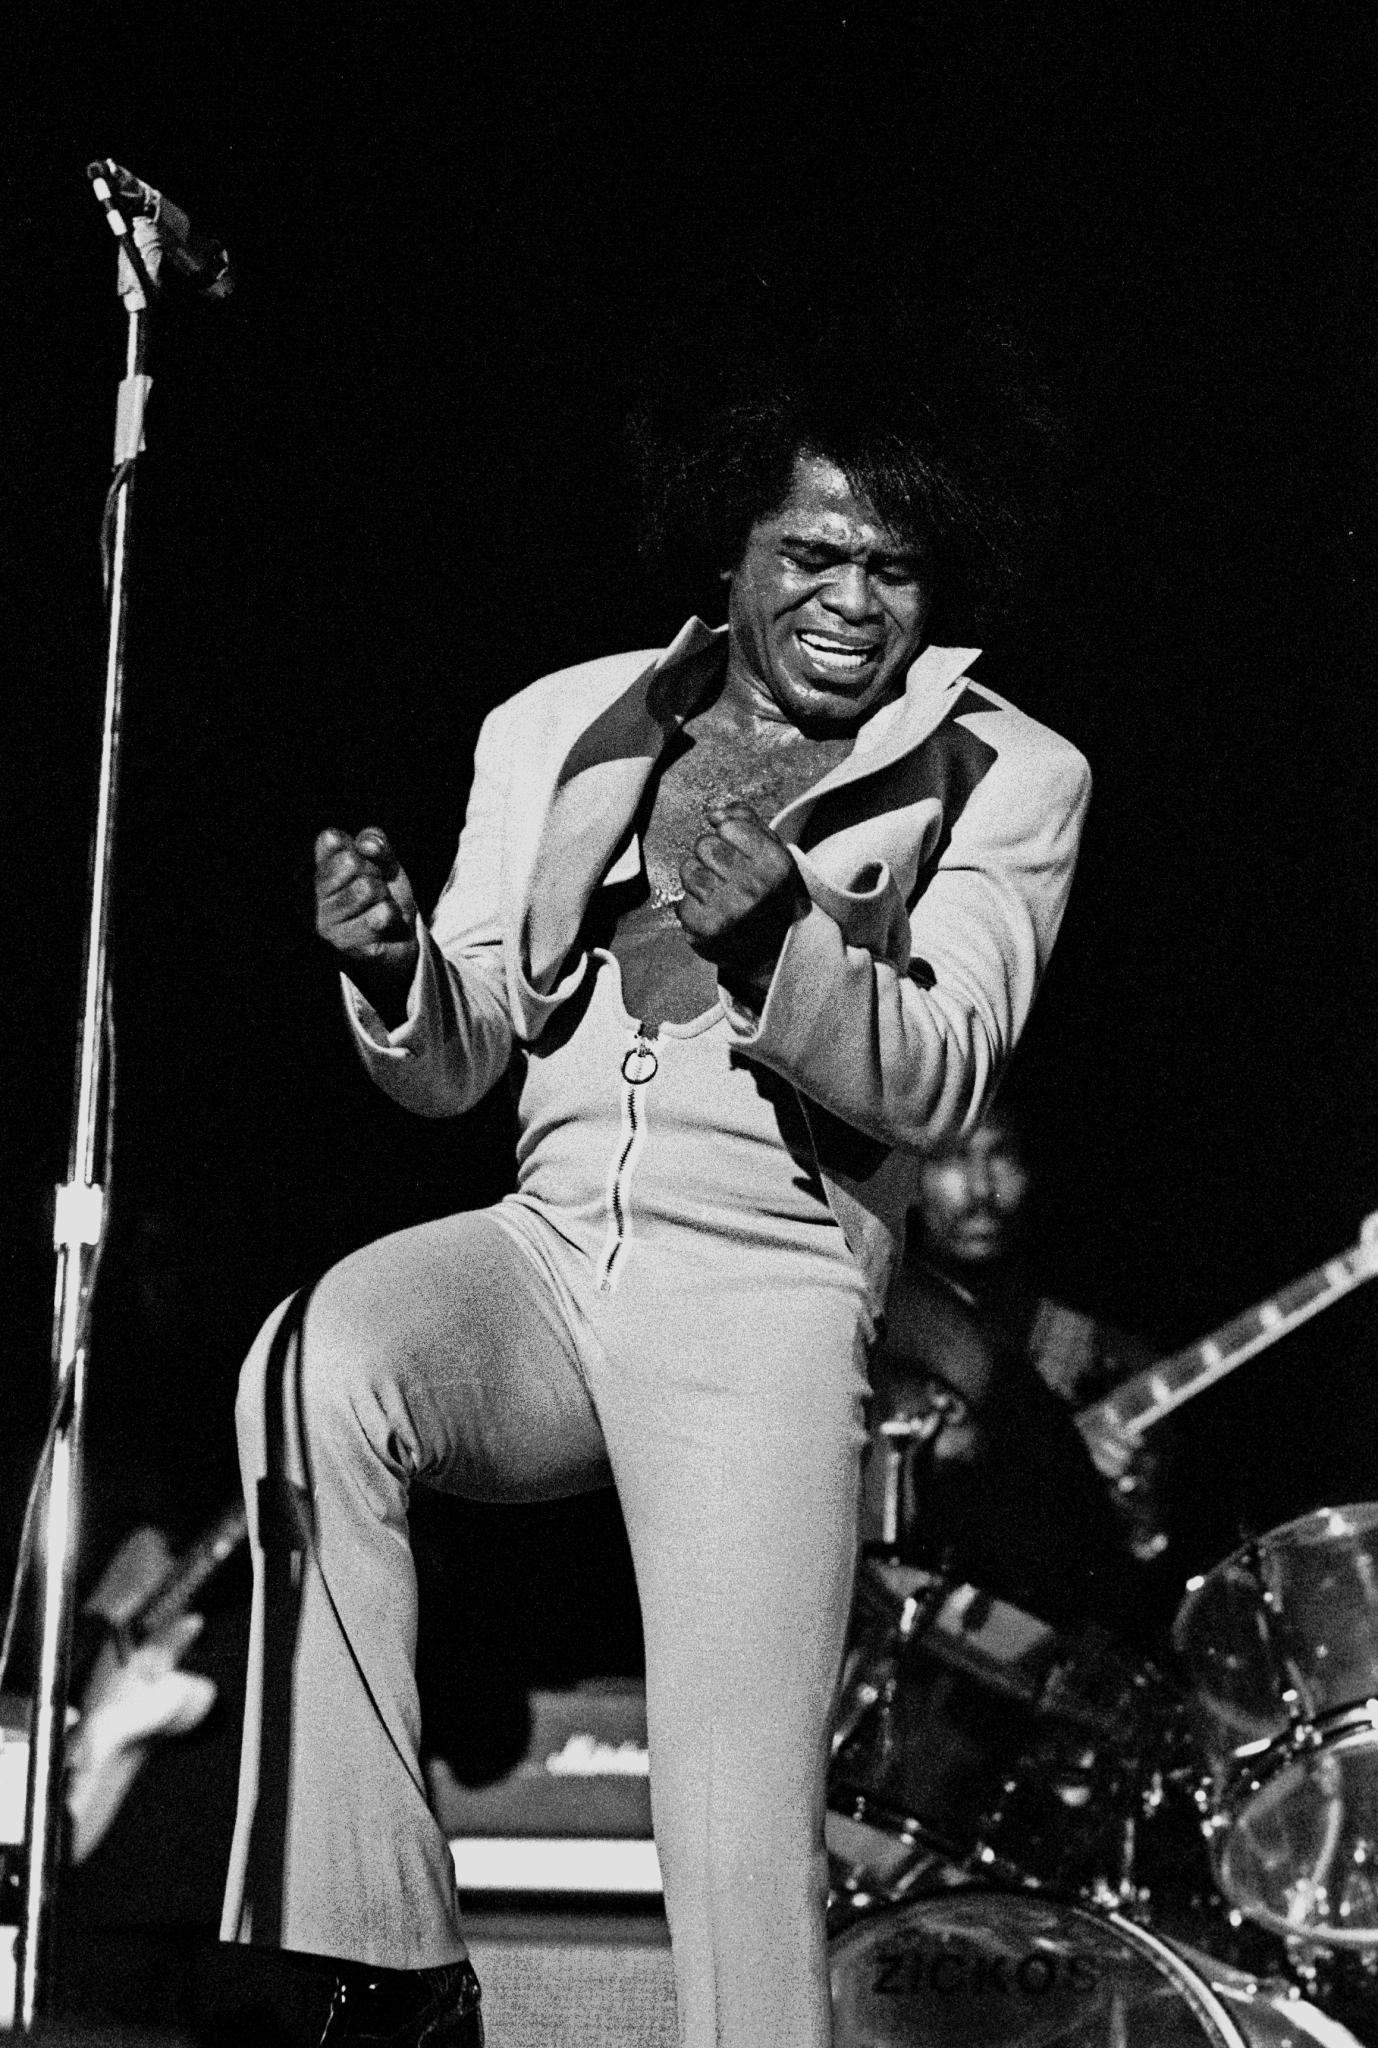 Youtube James Brown Get Up Offa That Thing : youtube, james, brown, thing, James, Brown, Wikipedia